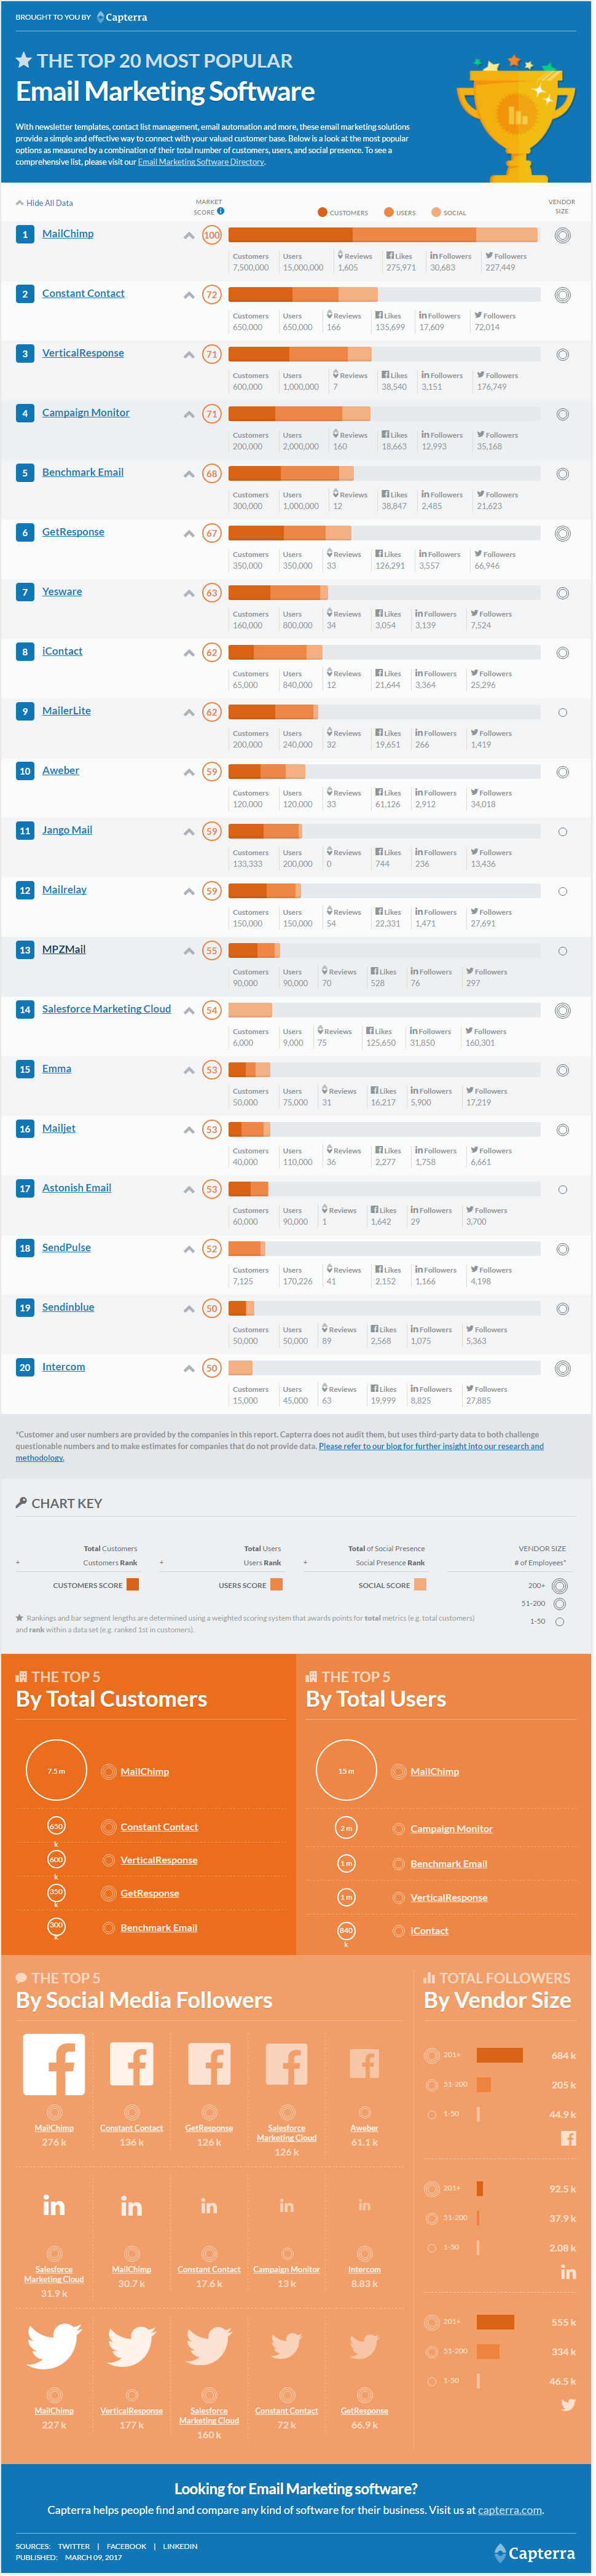 The Top 20 Most Popular Email Marketing Software Applications (Infographic)